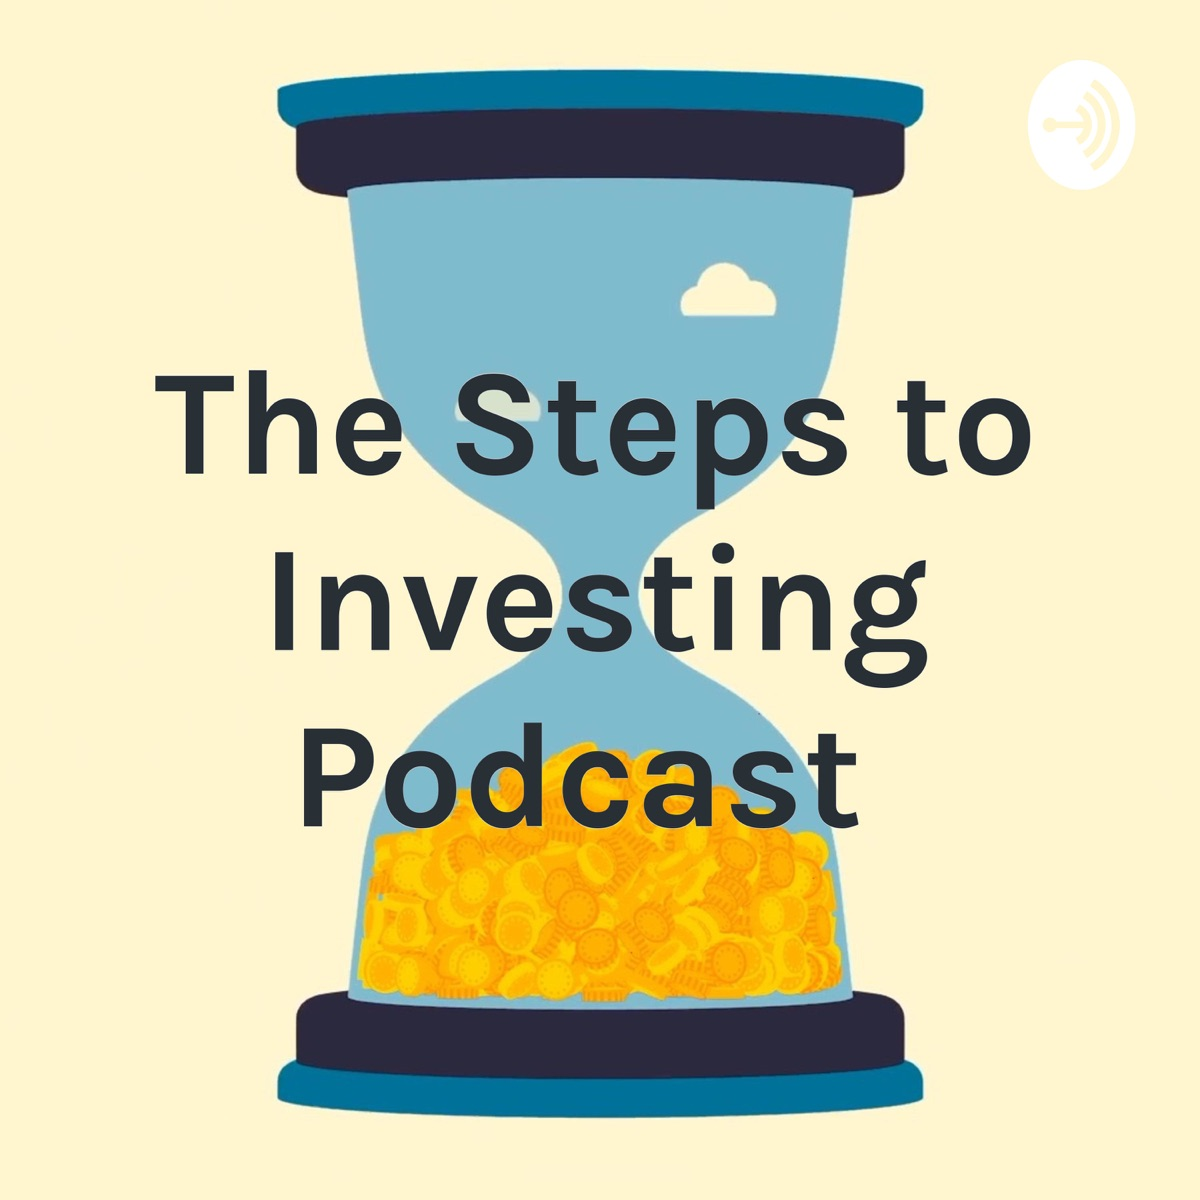 The Steps to Investing Podcast